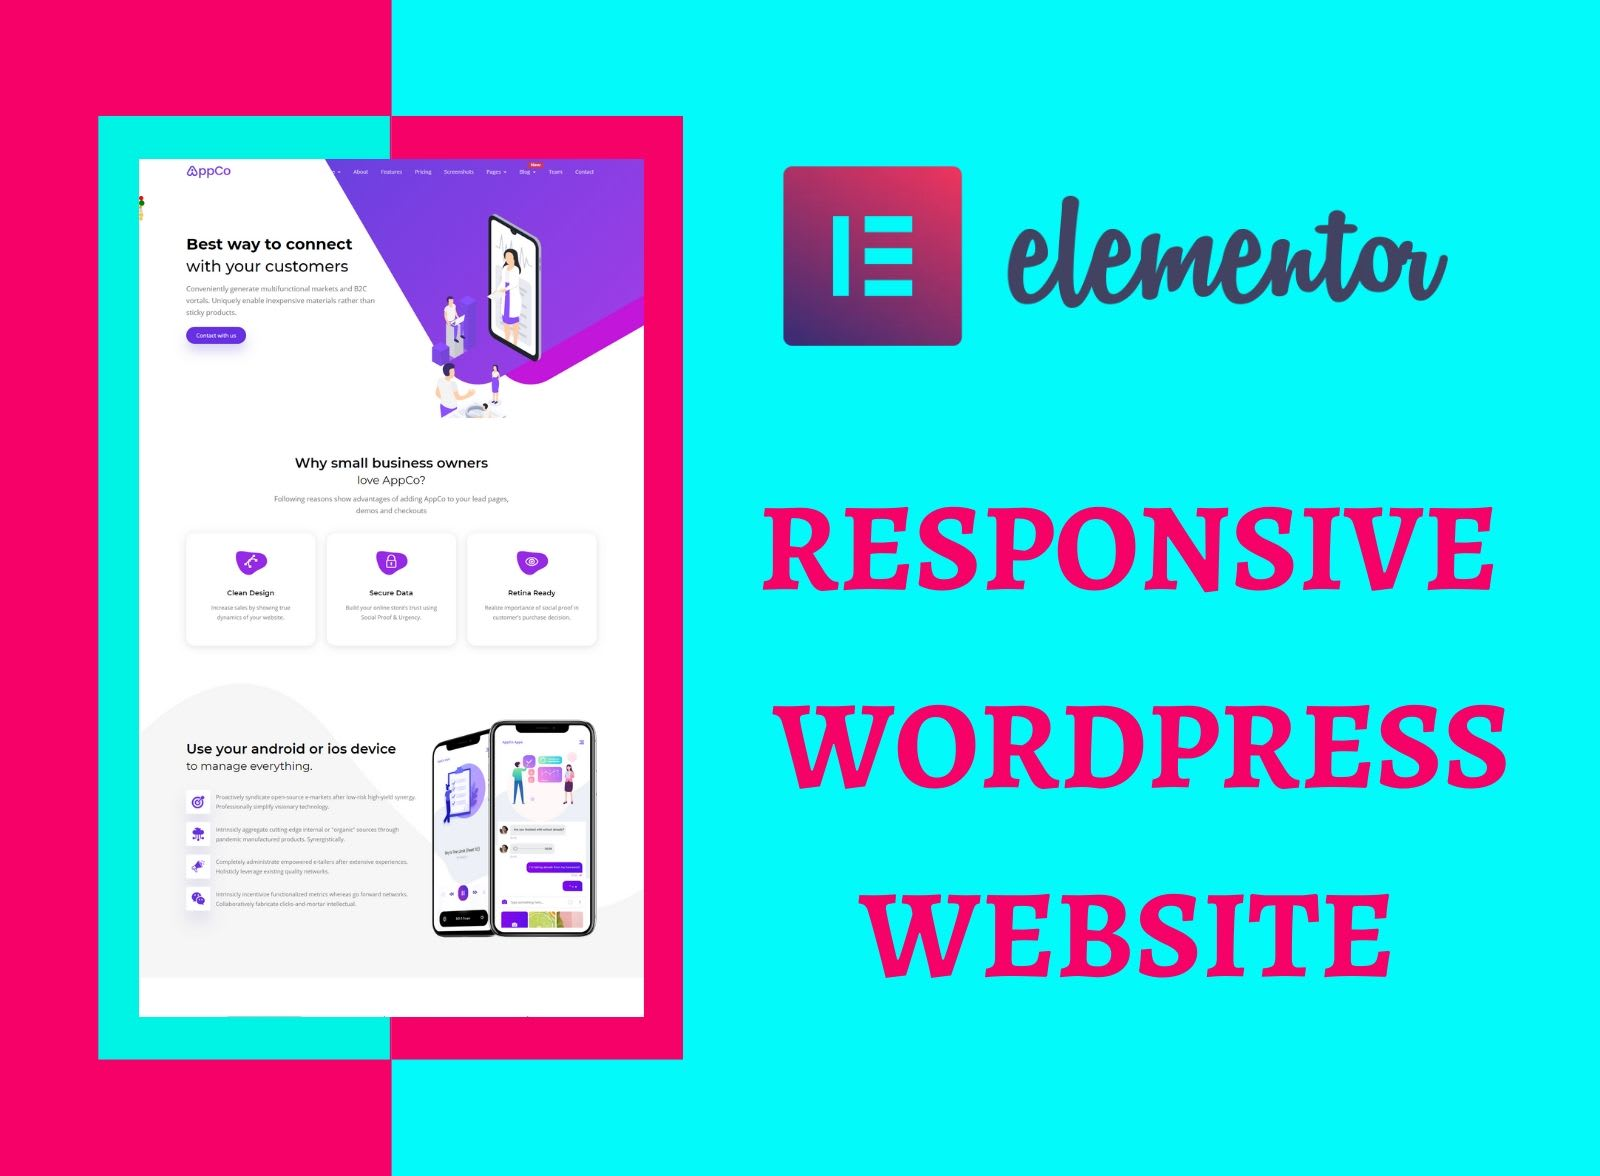 I will do create a responsive WordPress website design